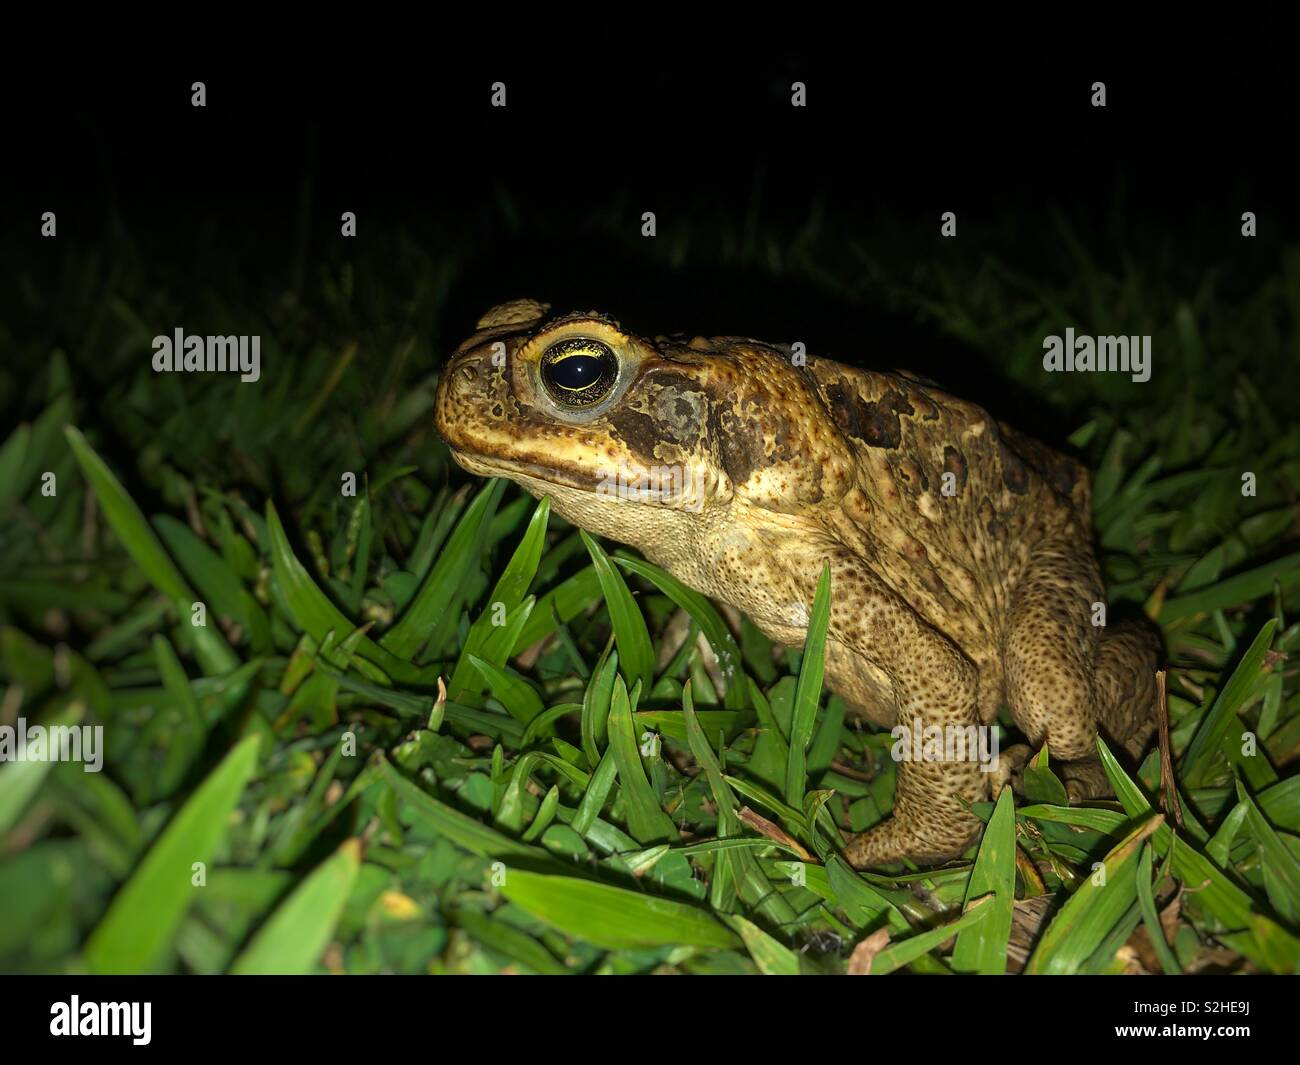 Rhinella marina commonly known as cane toad at night in Australia. - Stock Image